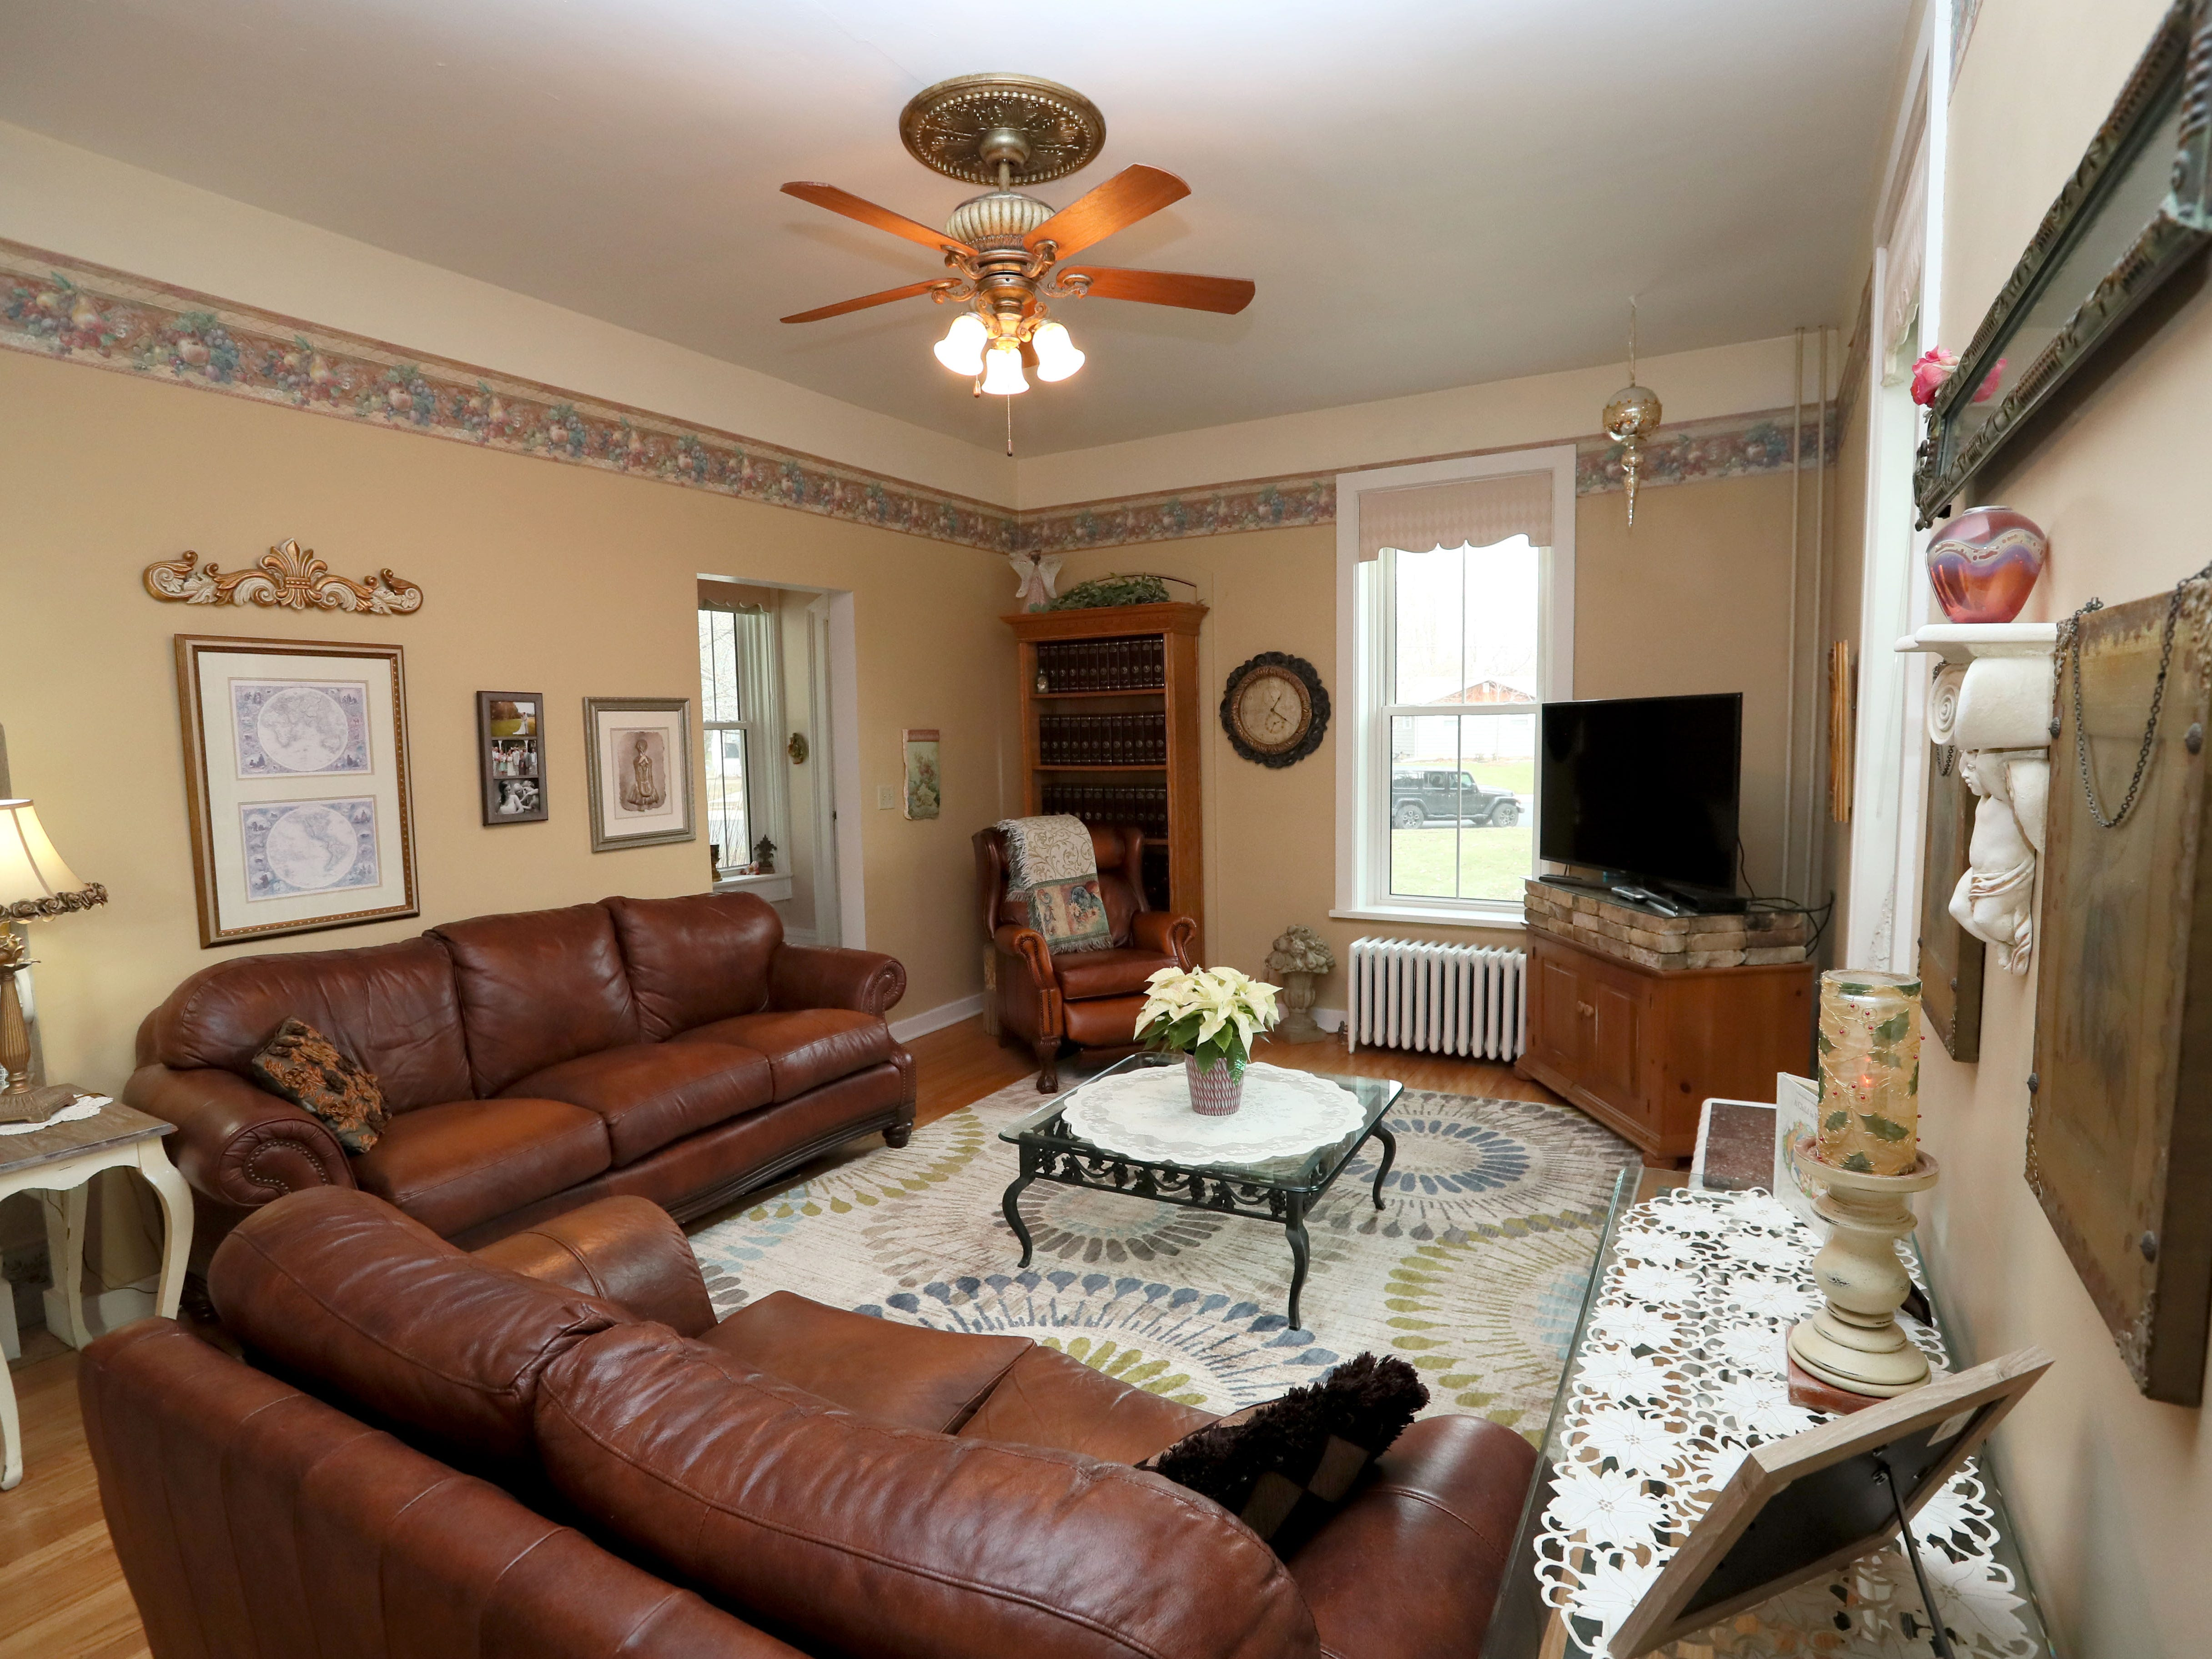 The couple likes spending time in the family room, with its comfy leather sofas.